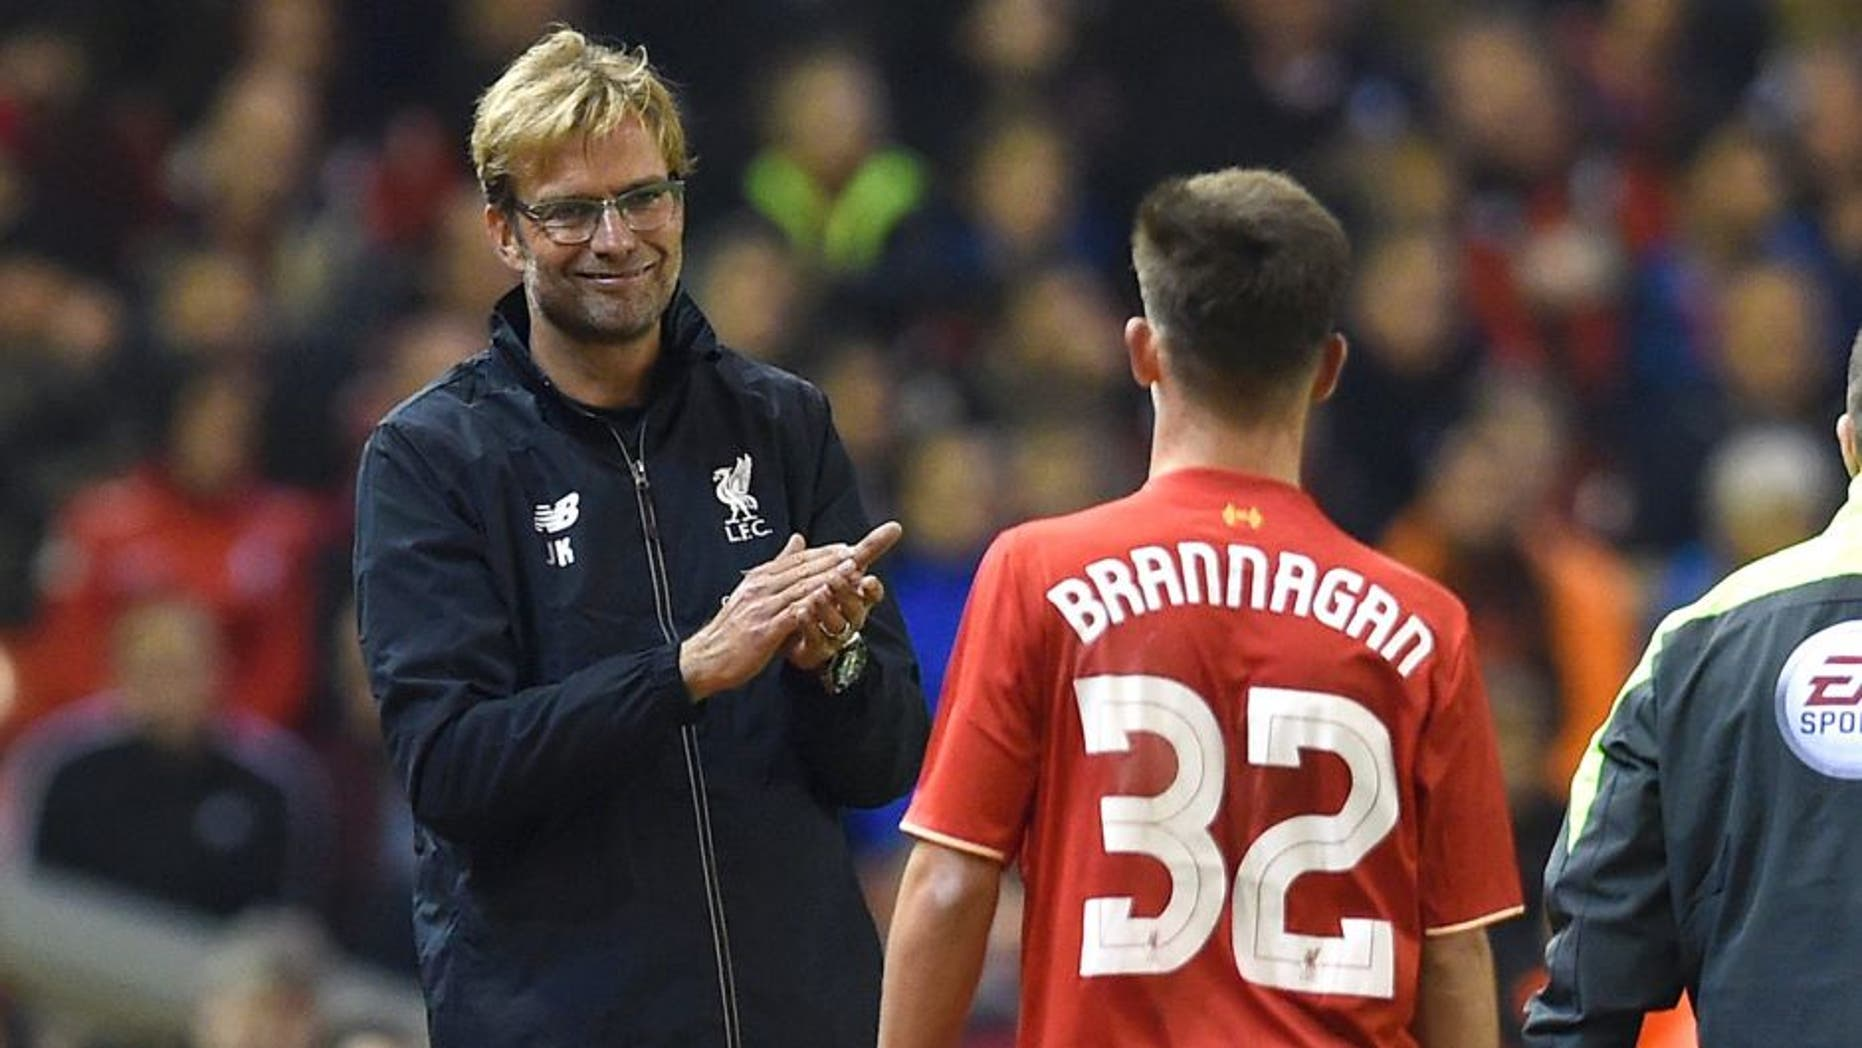 LIVERPOOL, ENGLAND - OCTOBER 28: (THE SUN OUT, THE SUN ON SUNDAY OUT) Jurgen Klopp manager of Liverpool gives a hug and a clap to Cameron Brannagan of Liverpool during the Capital One Cup Fourth Round match between Liverpool and AFC Bournemouth at Anfield on October 28, 2015 in Liverpool, England. (Photo by John Powell/Liverpool FC via Getty Images)